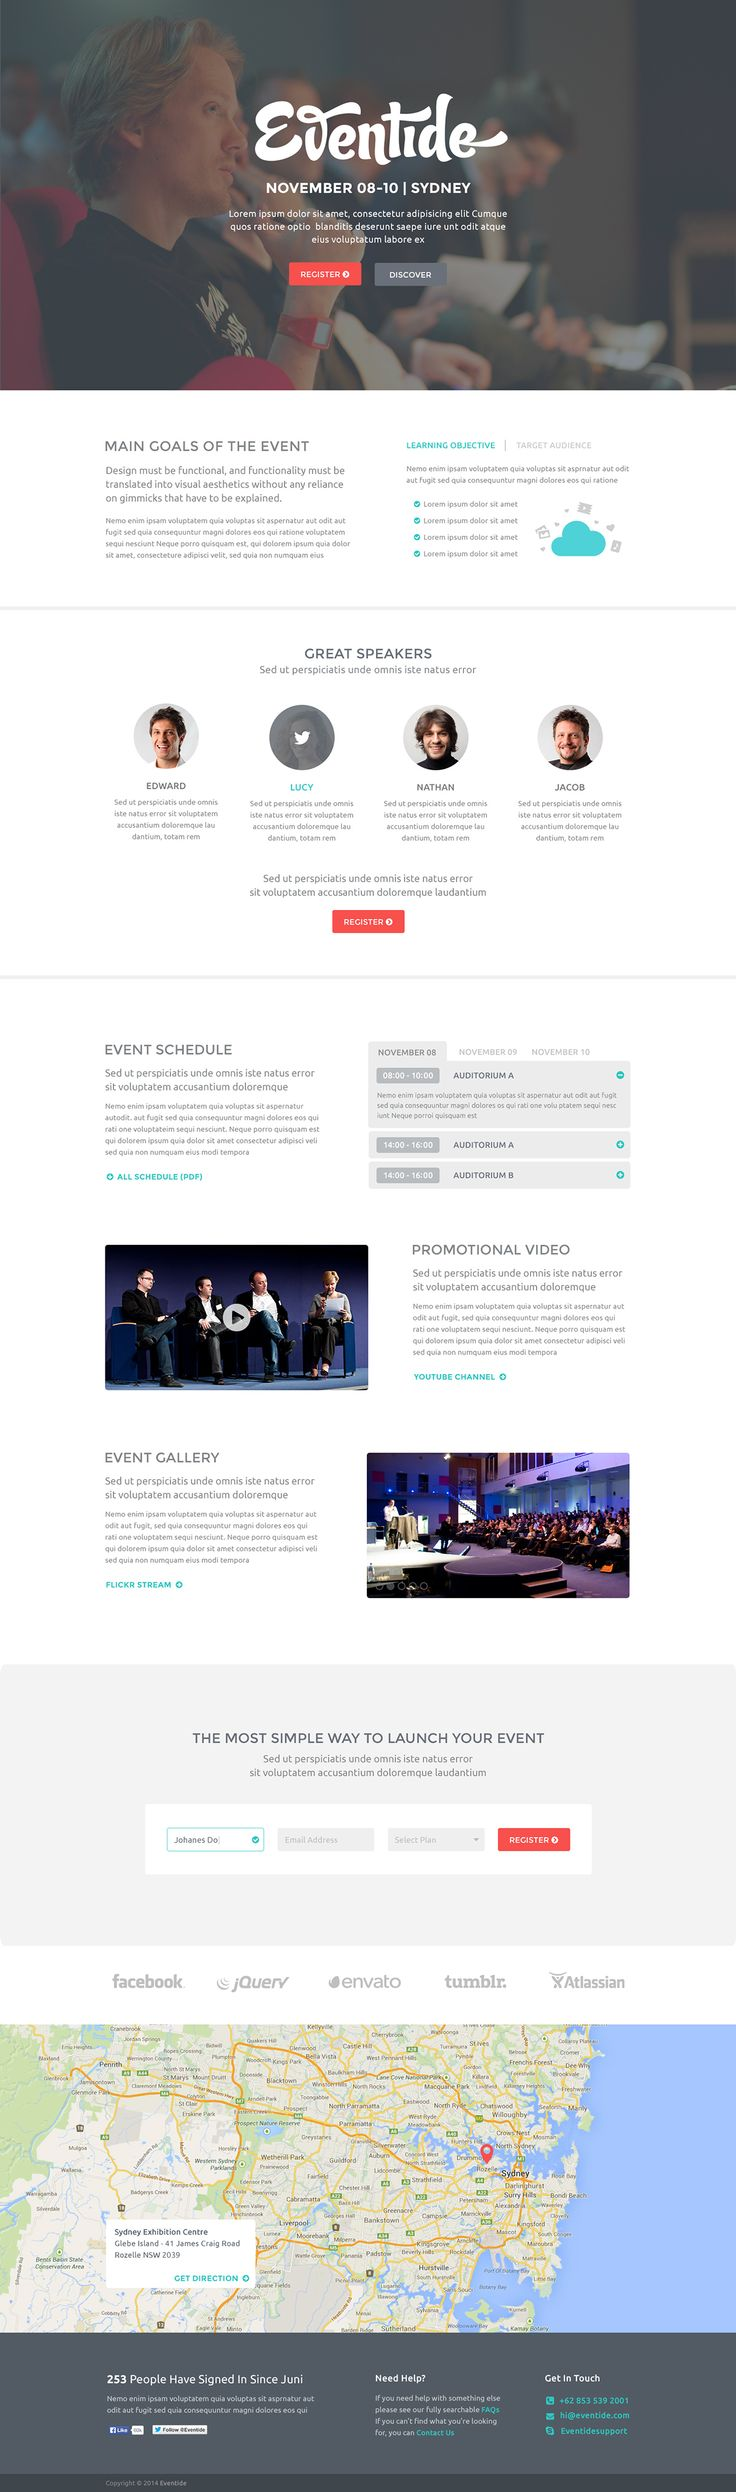 Clean and nice designed event or conference website template. In the PSD file you'll find a landing page with event schedule, promotional video page, event gallery, event map and others. The freebie was designed by Weekend.